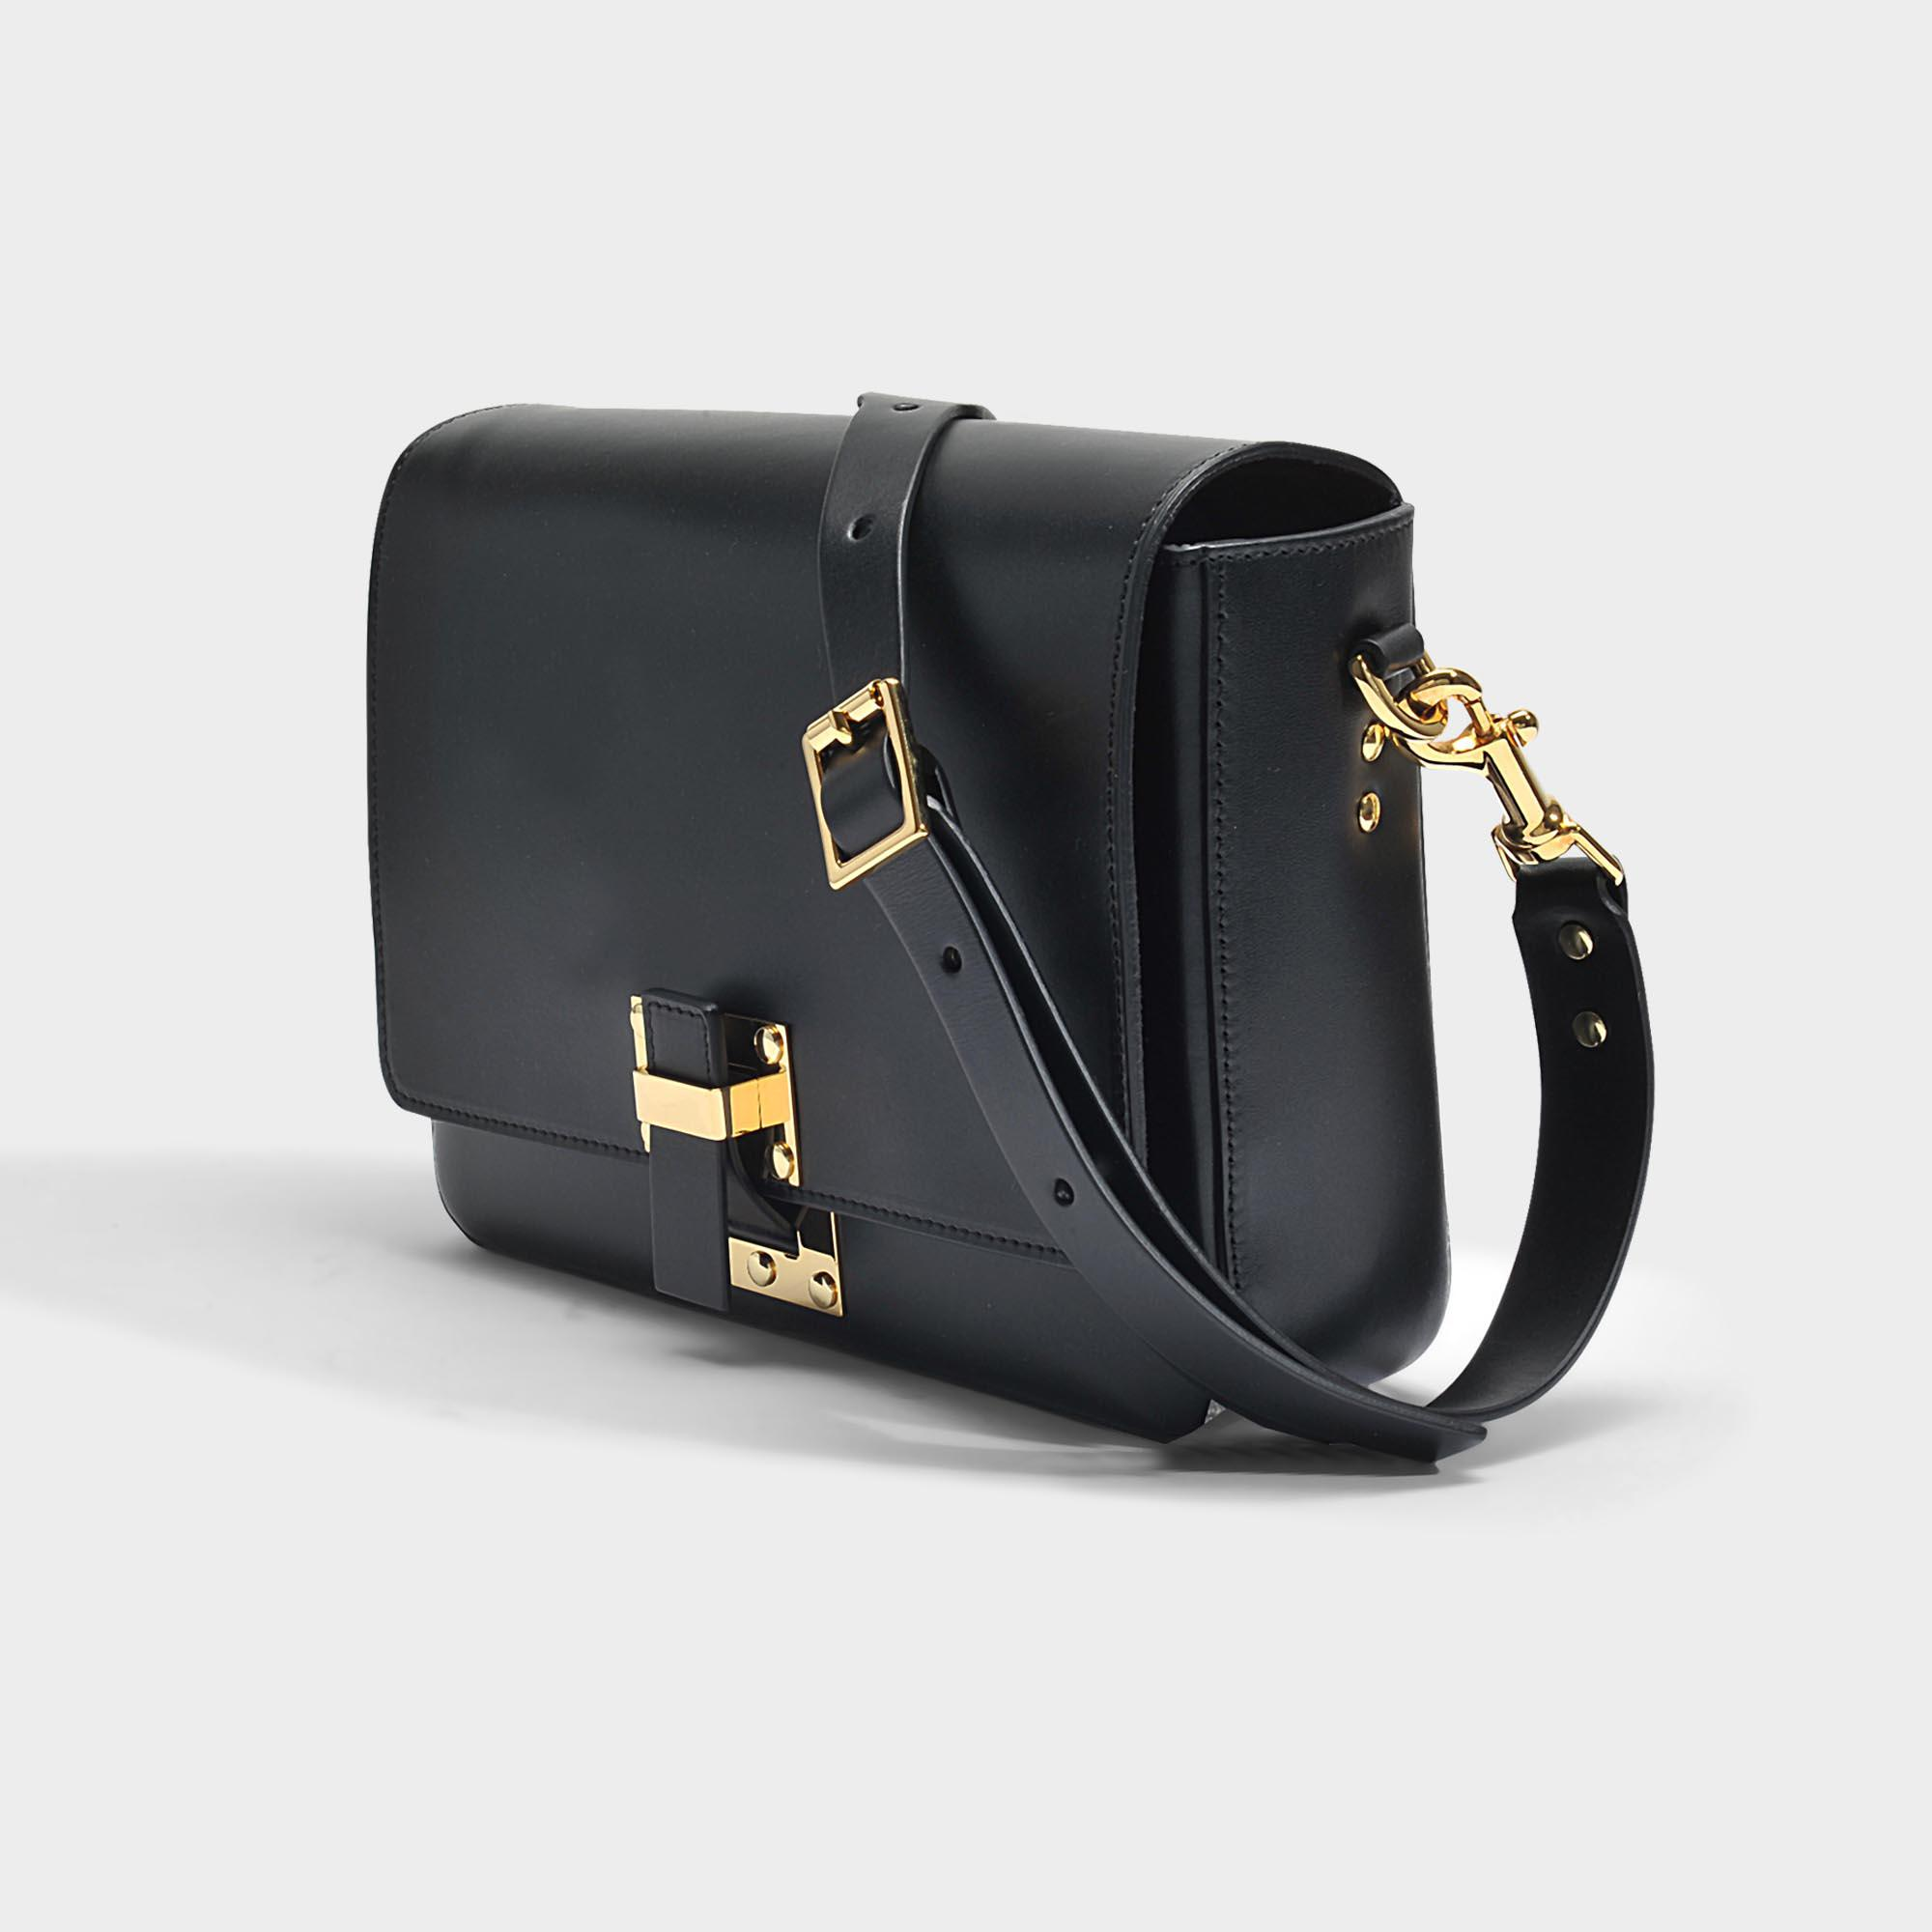 The Quick Large Bag in Black Cow Leather Sophie Hulme HhI8k